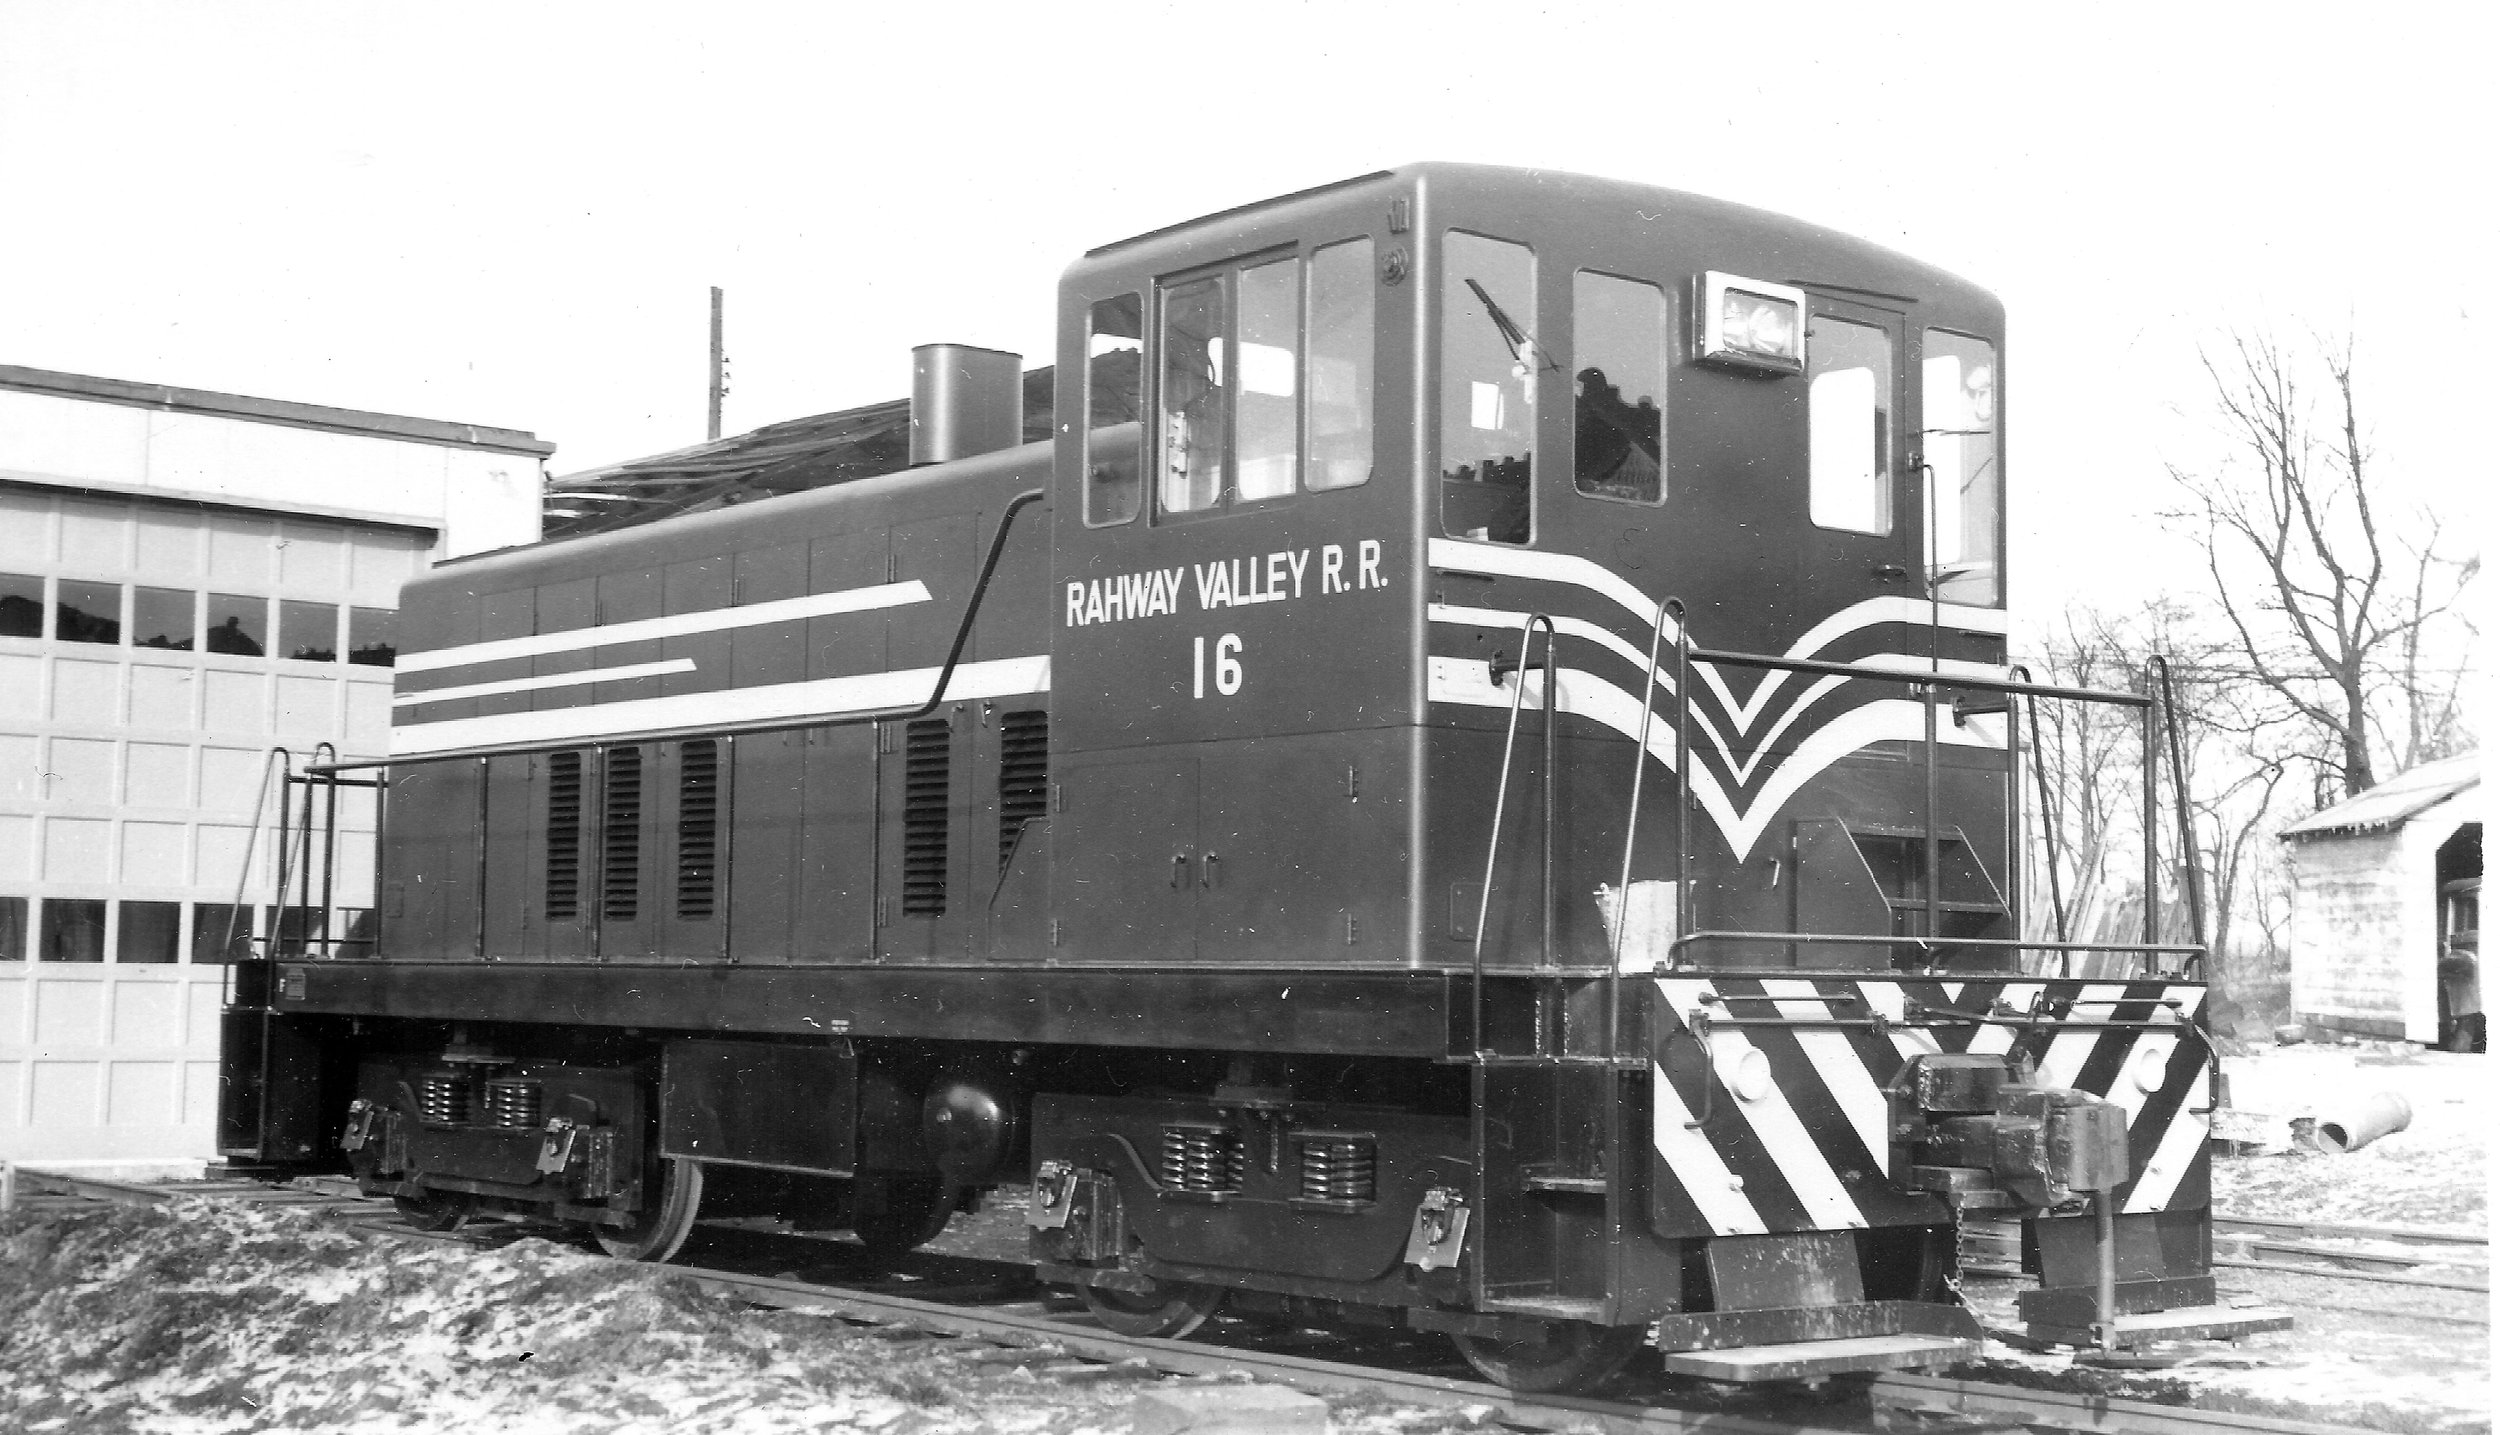 No. 16 is pictured in Kenilworth, NJ, the site of the RV's headquarters, on January 30, 1951. The one-stall engine house seen in front of the locomotive was constructed specifically to house the RV's first diesel.  (William S. Young photo, Richard J. King collection)